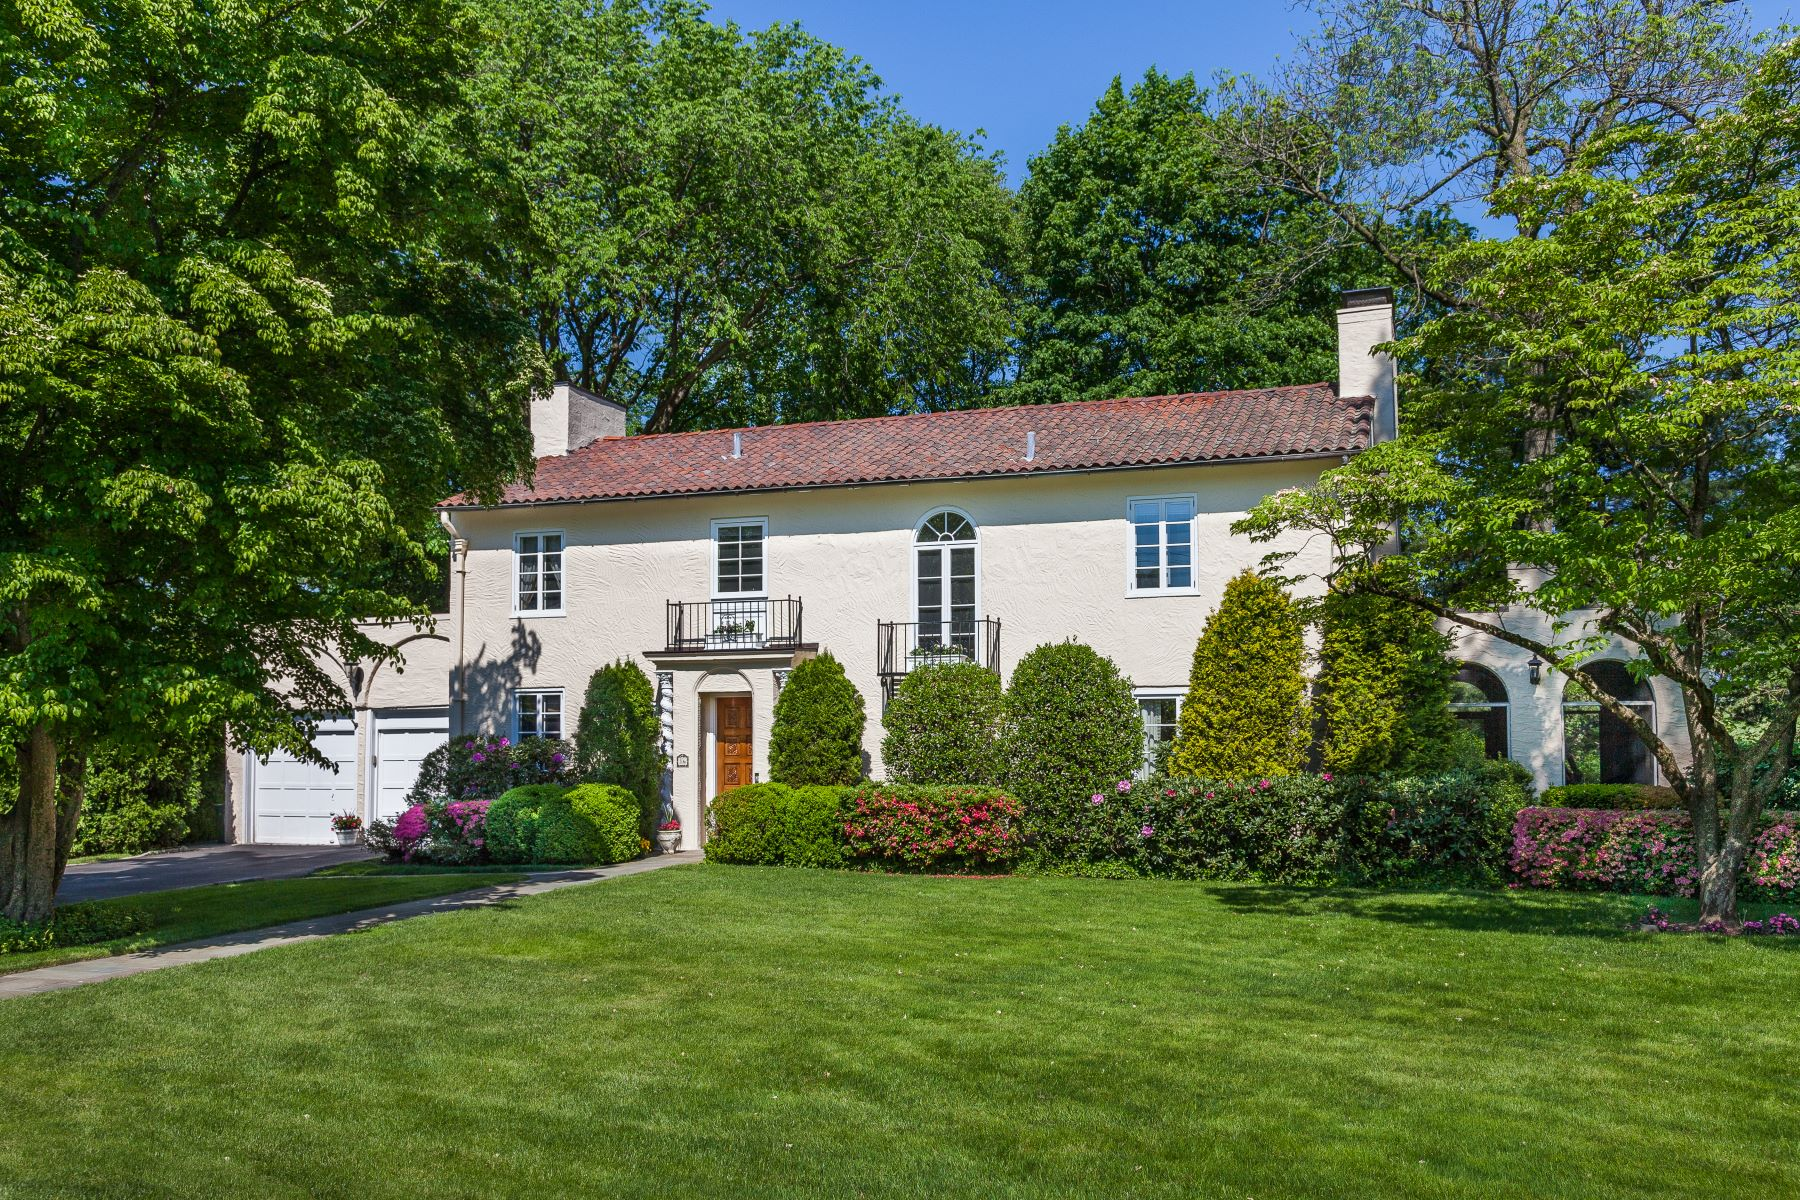 Single Family Homes for Active at Panoramic Golf Course Views 16 Courseview Road Bronxville, New York 10708 United States